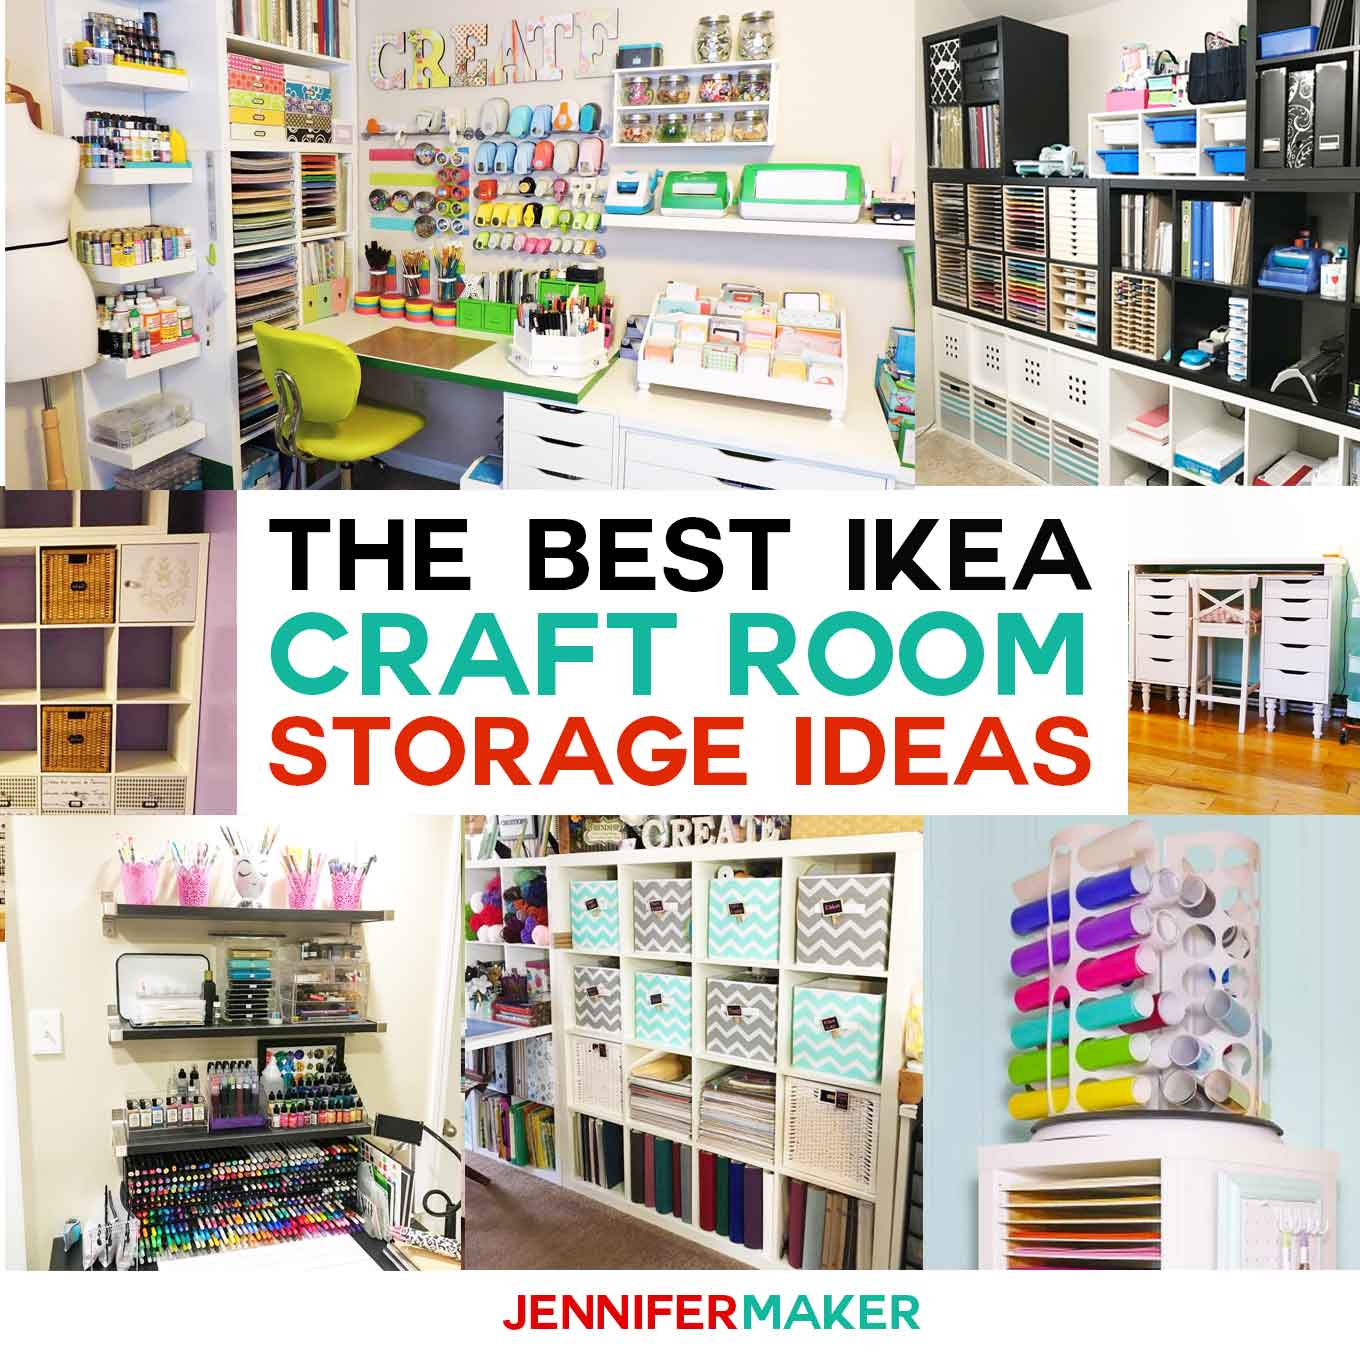 Ikea Expedit Ovet The Best Ikea Craft Room Storage Shelves Ideas Jennifer Maker